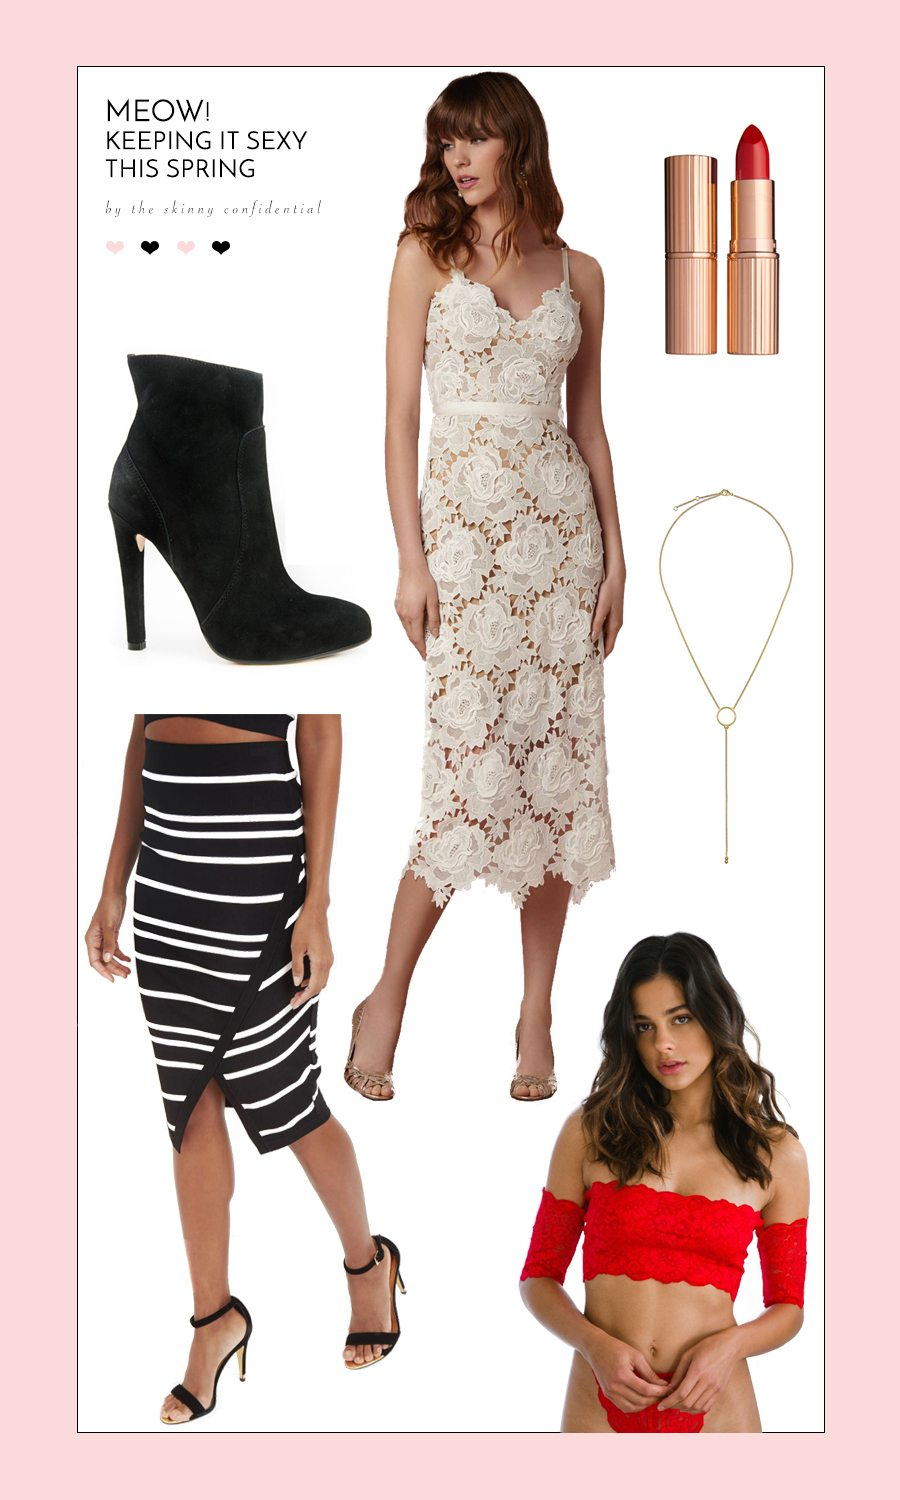 keeping it sexy this spring | by the skinny confidential